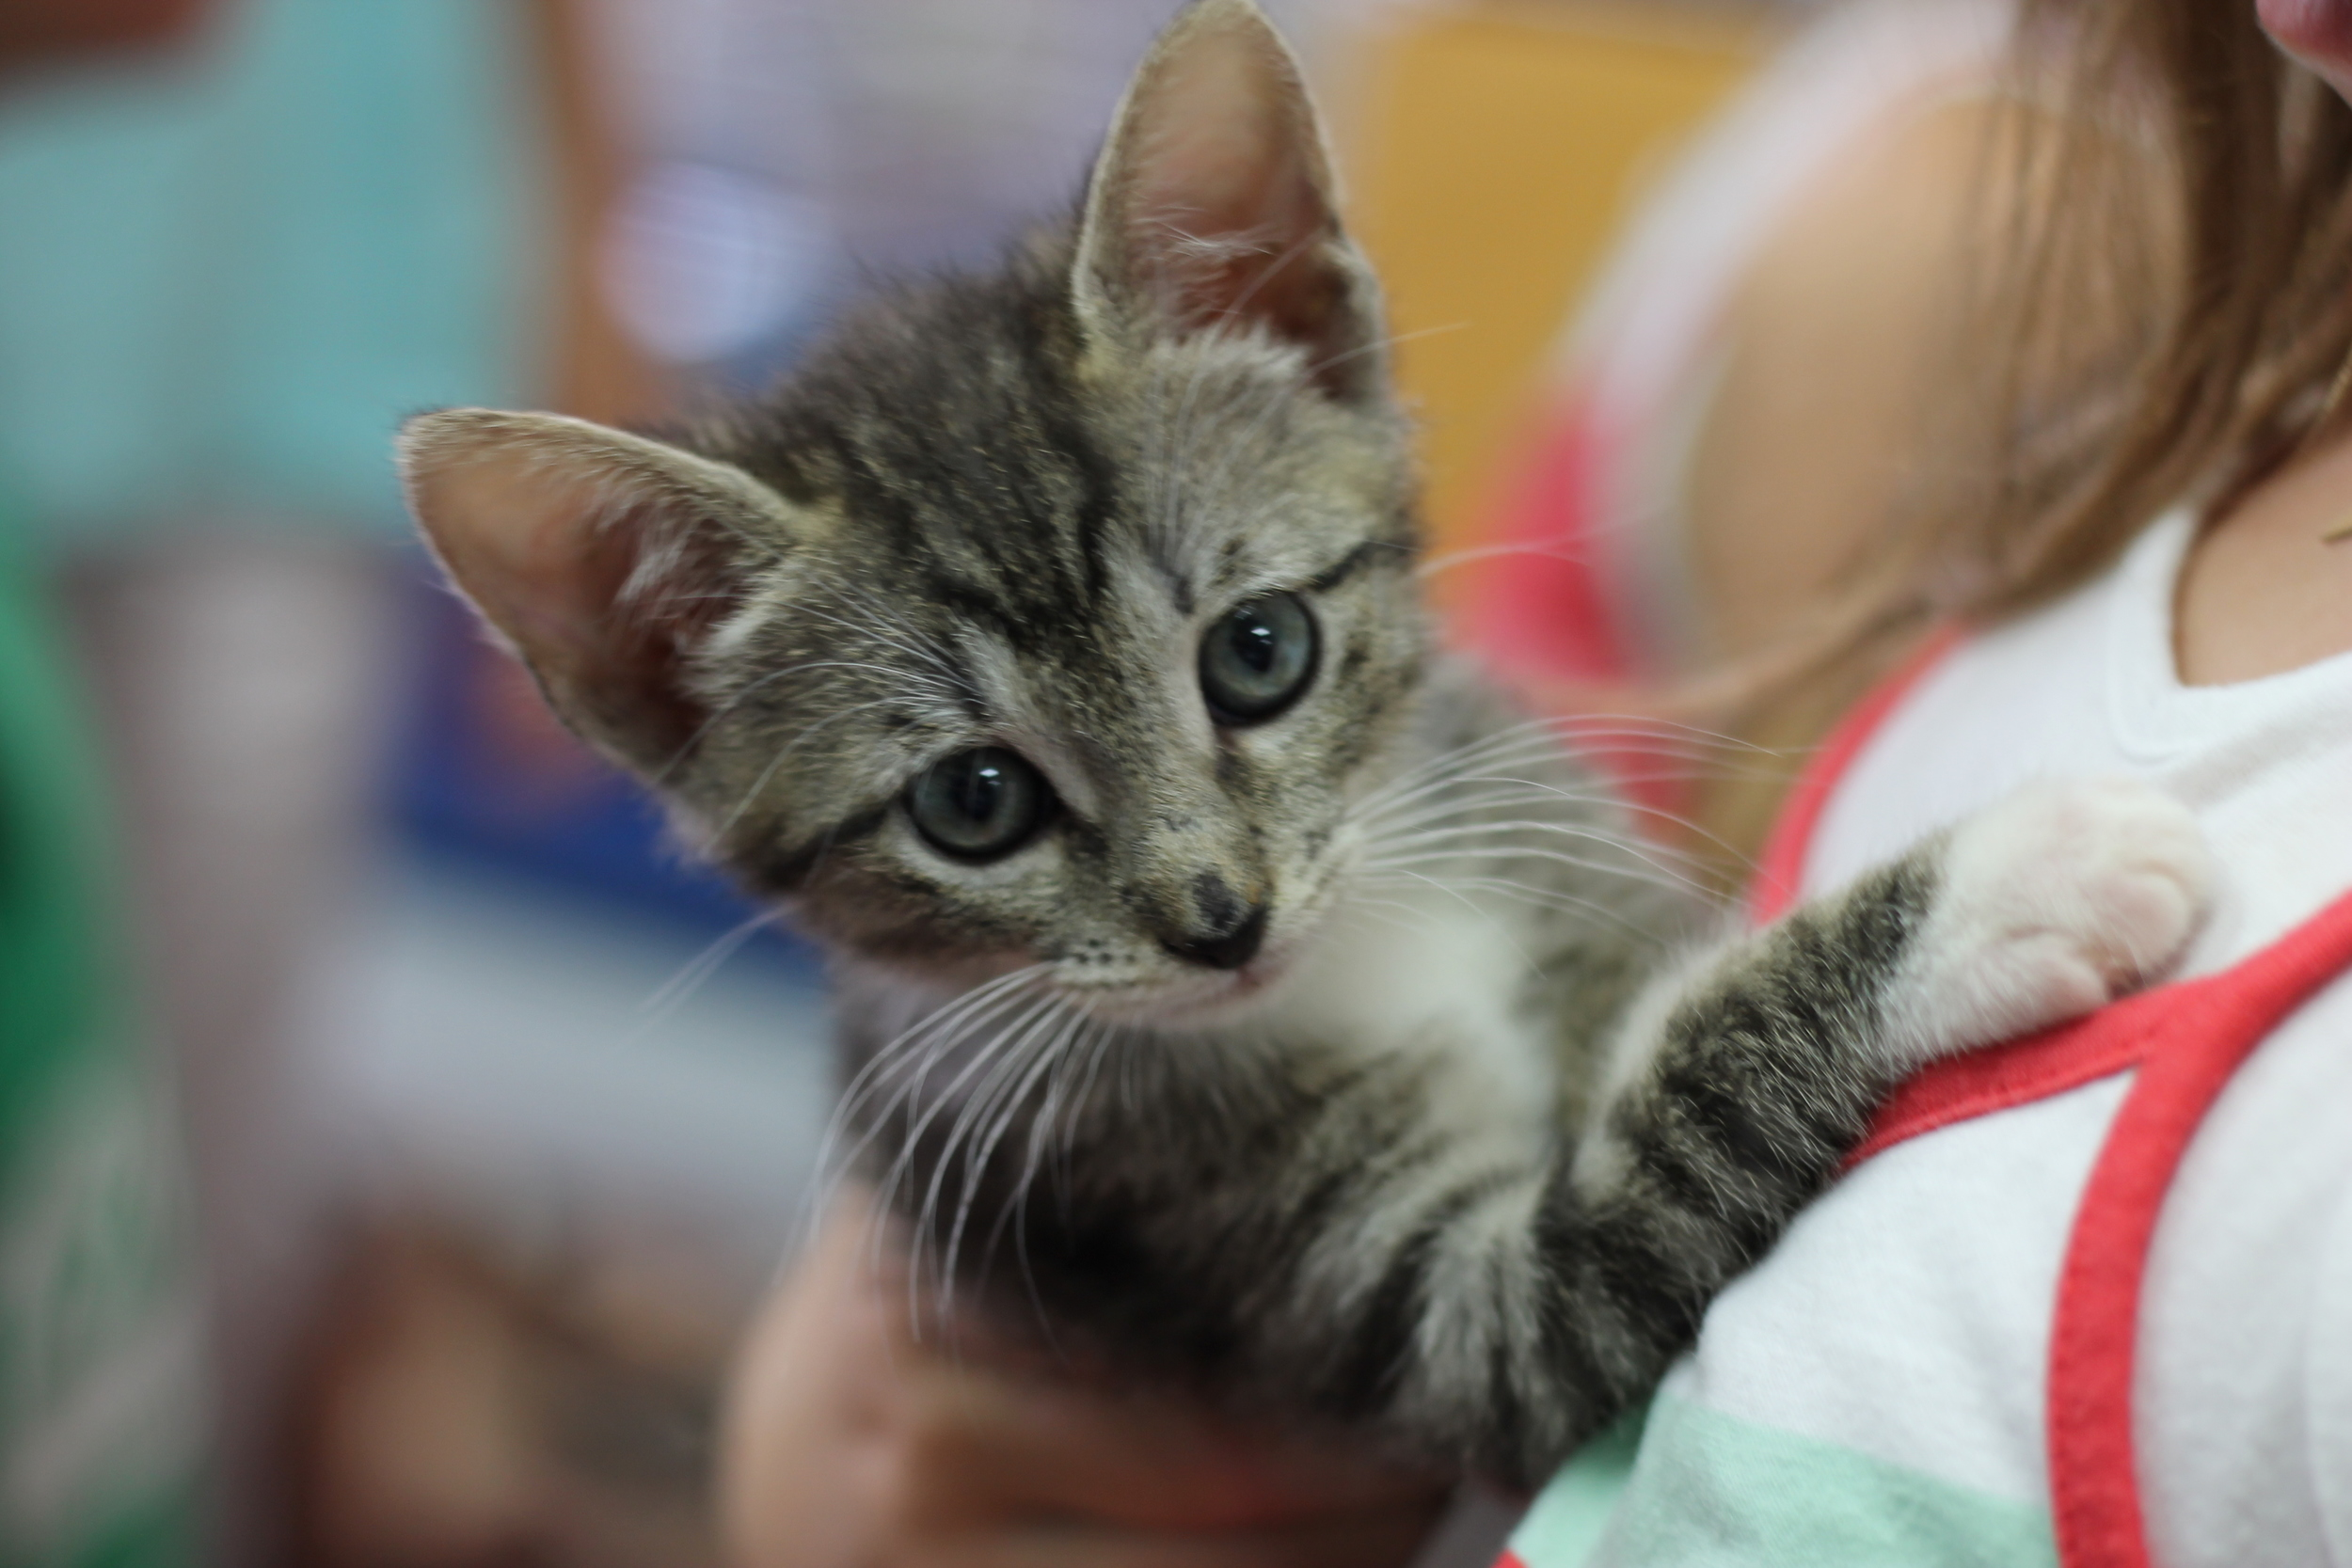 This is Wanda, a lucky kitten that was adopted. Here she is being held by her new family. She will miss her two siblings, Glamour and Smokey, but now have two new sisters and a brother!